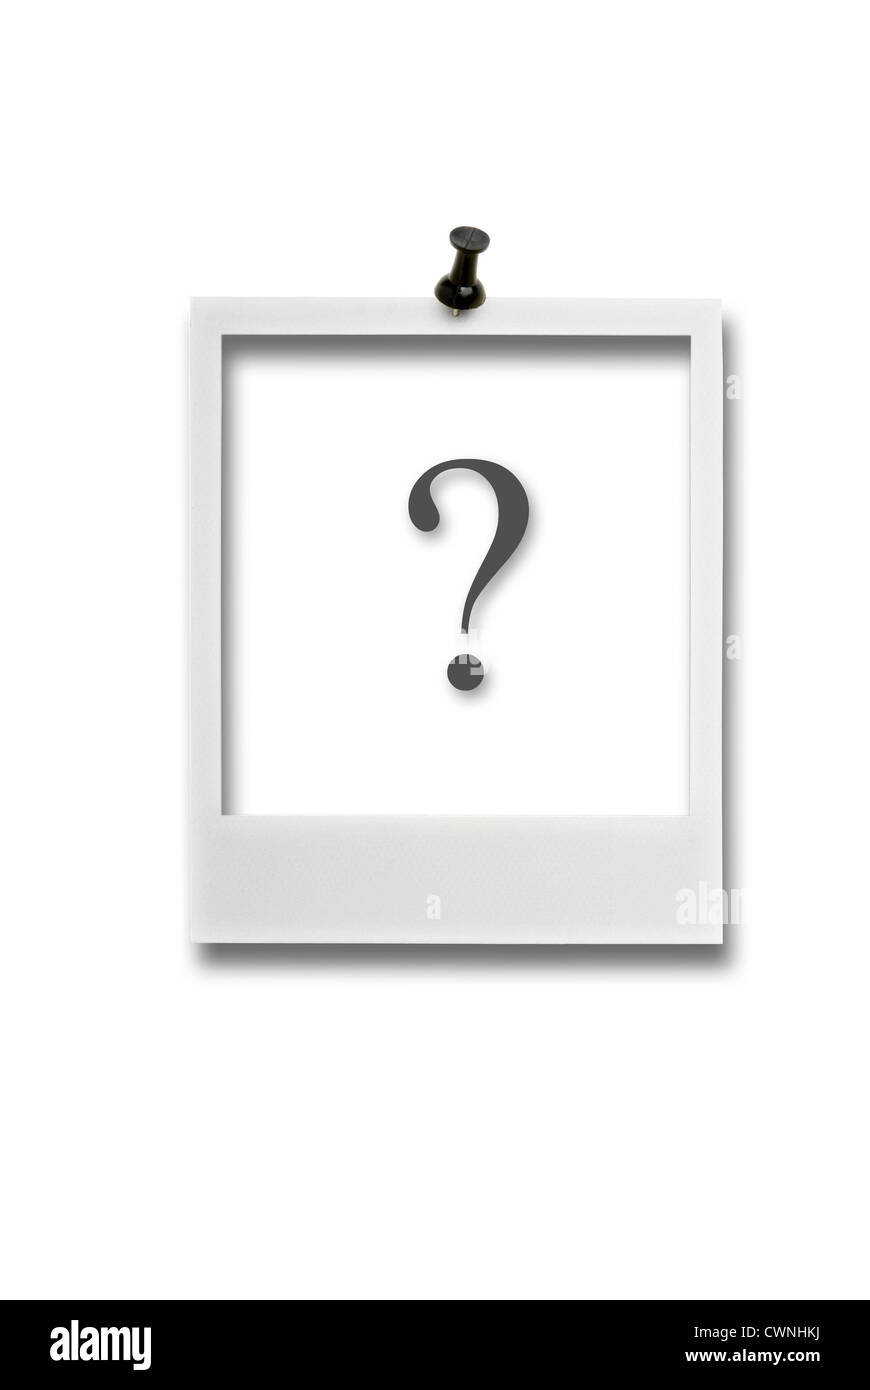 Empty polaroid frame with question mark and pin, isolated on 100% white background - Stock Image